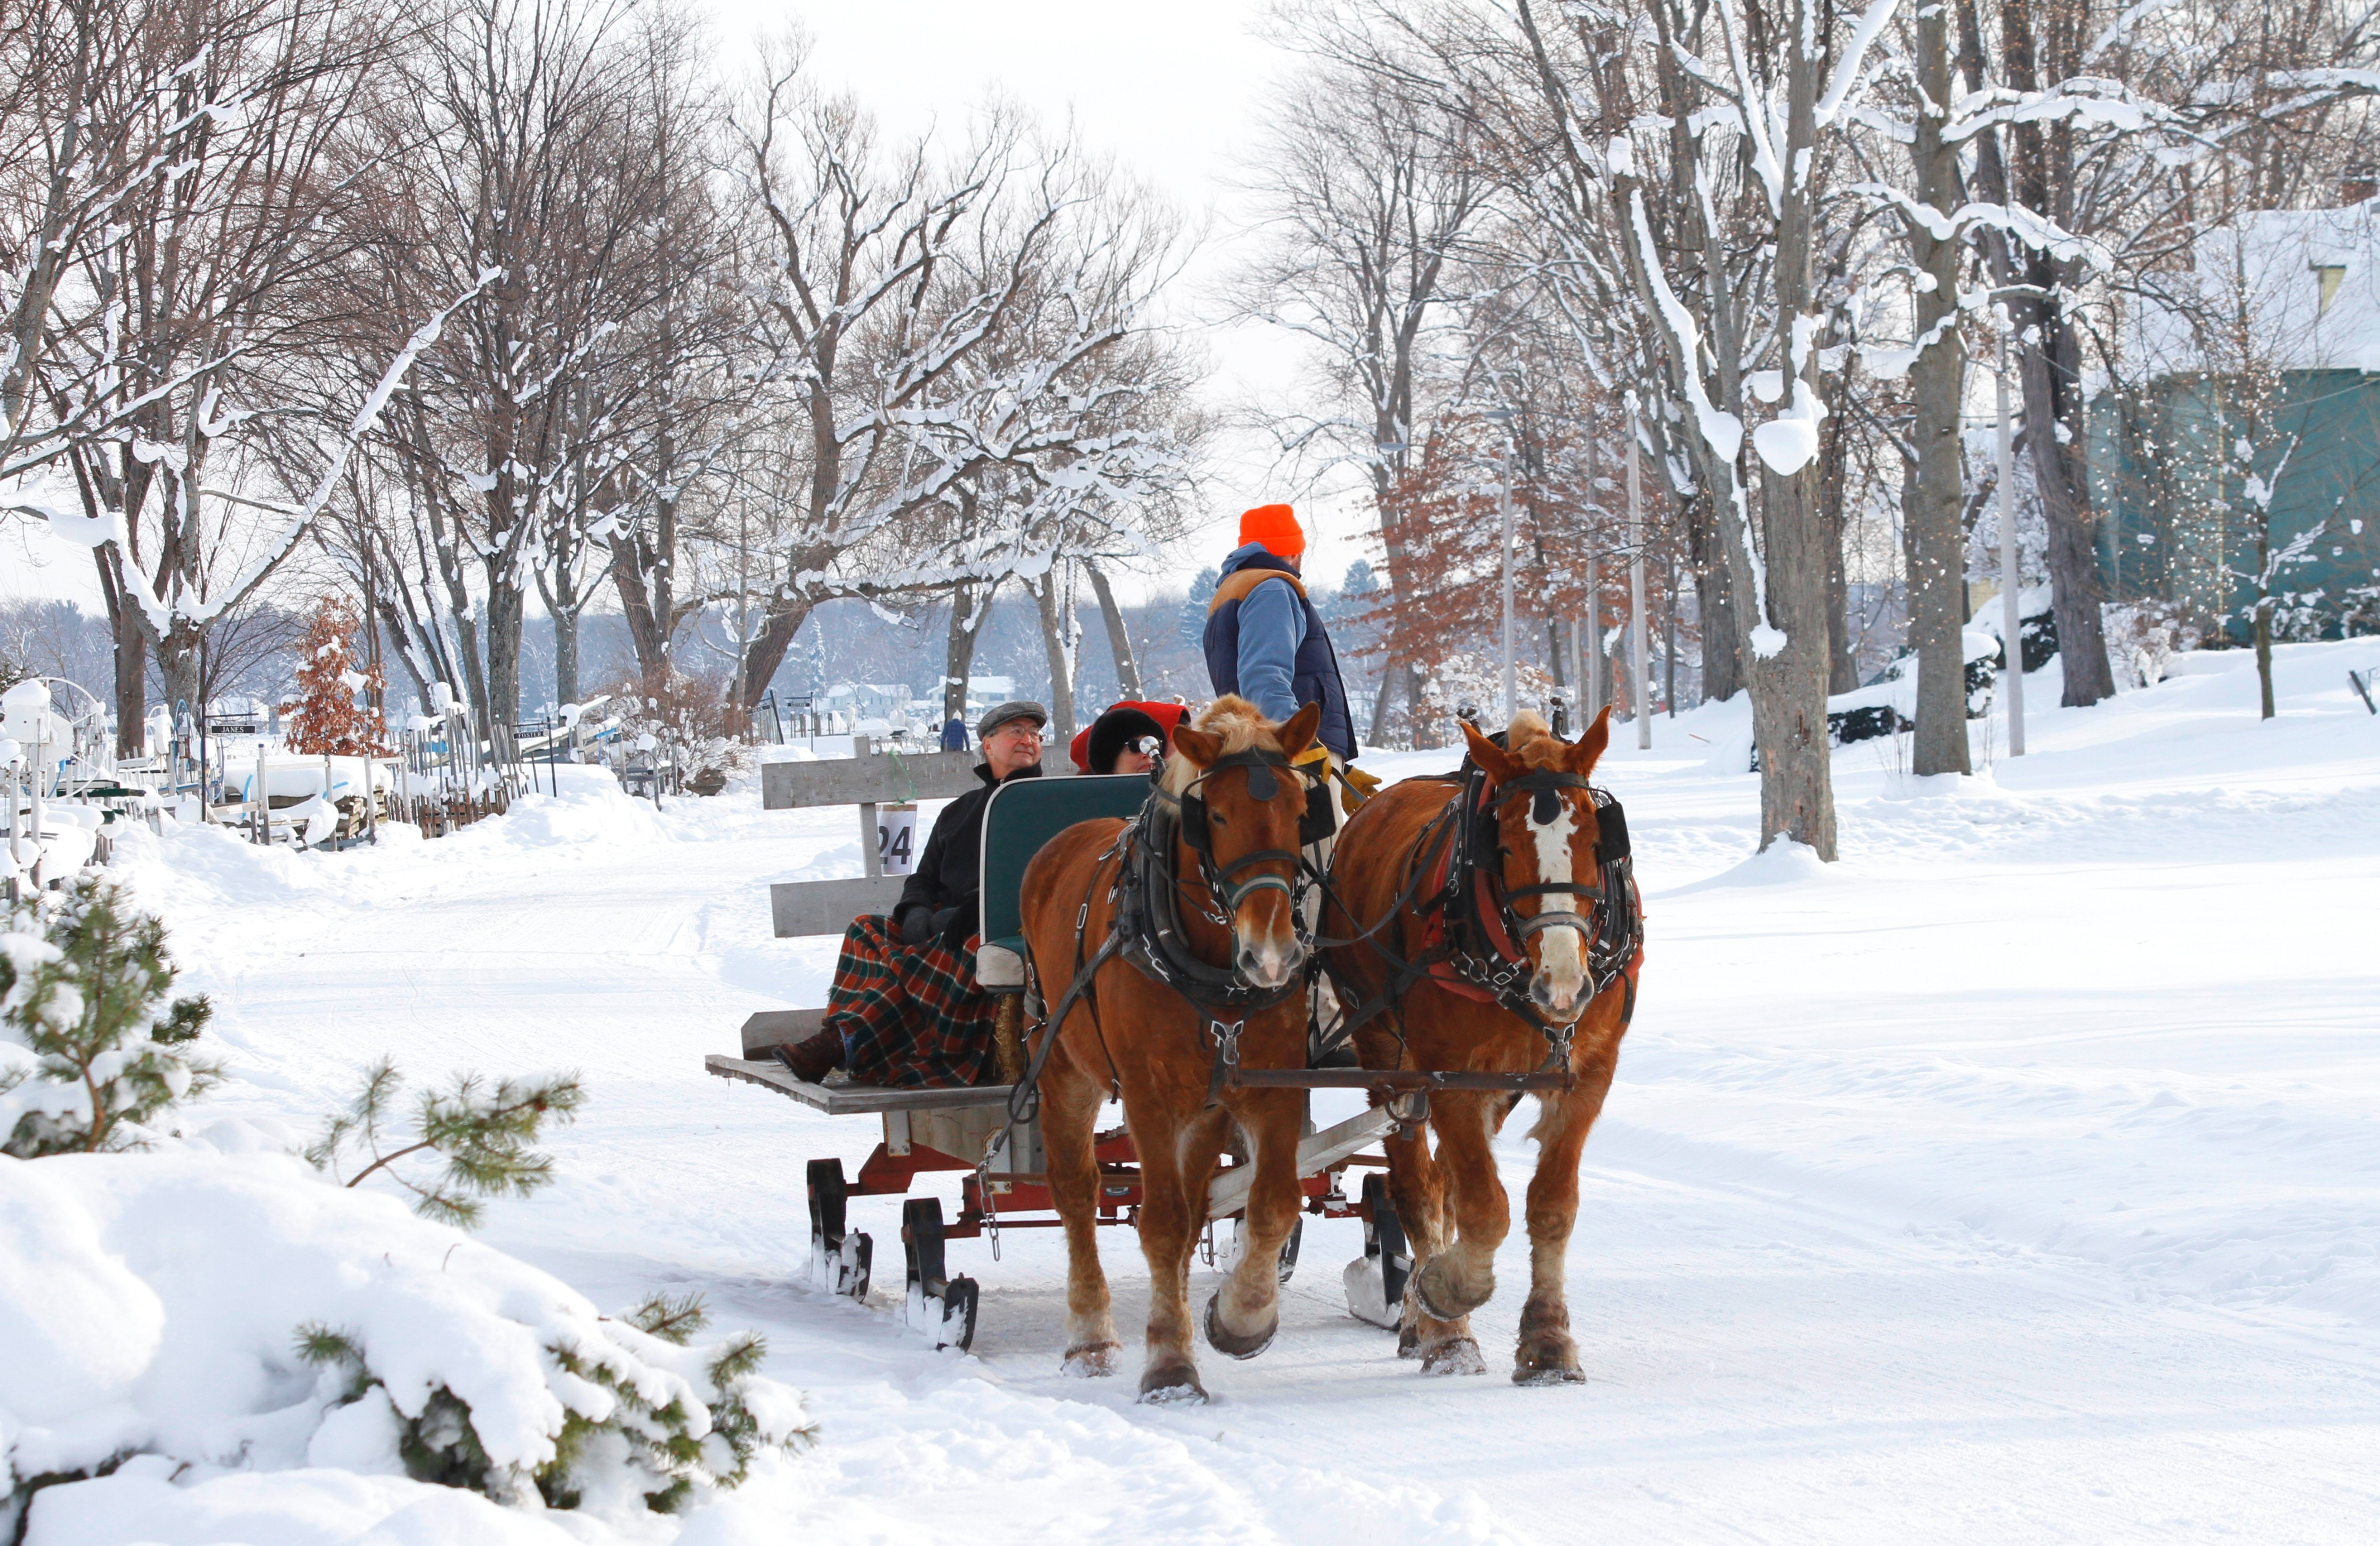 10 Reasons to Visit Chautauqua County and Western New York